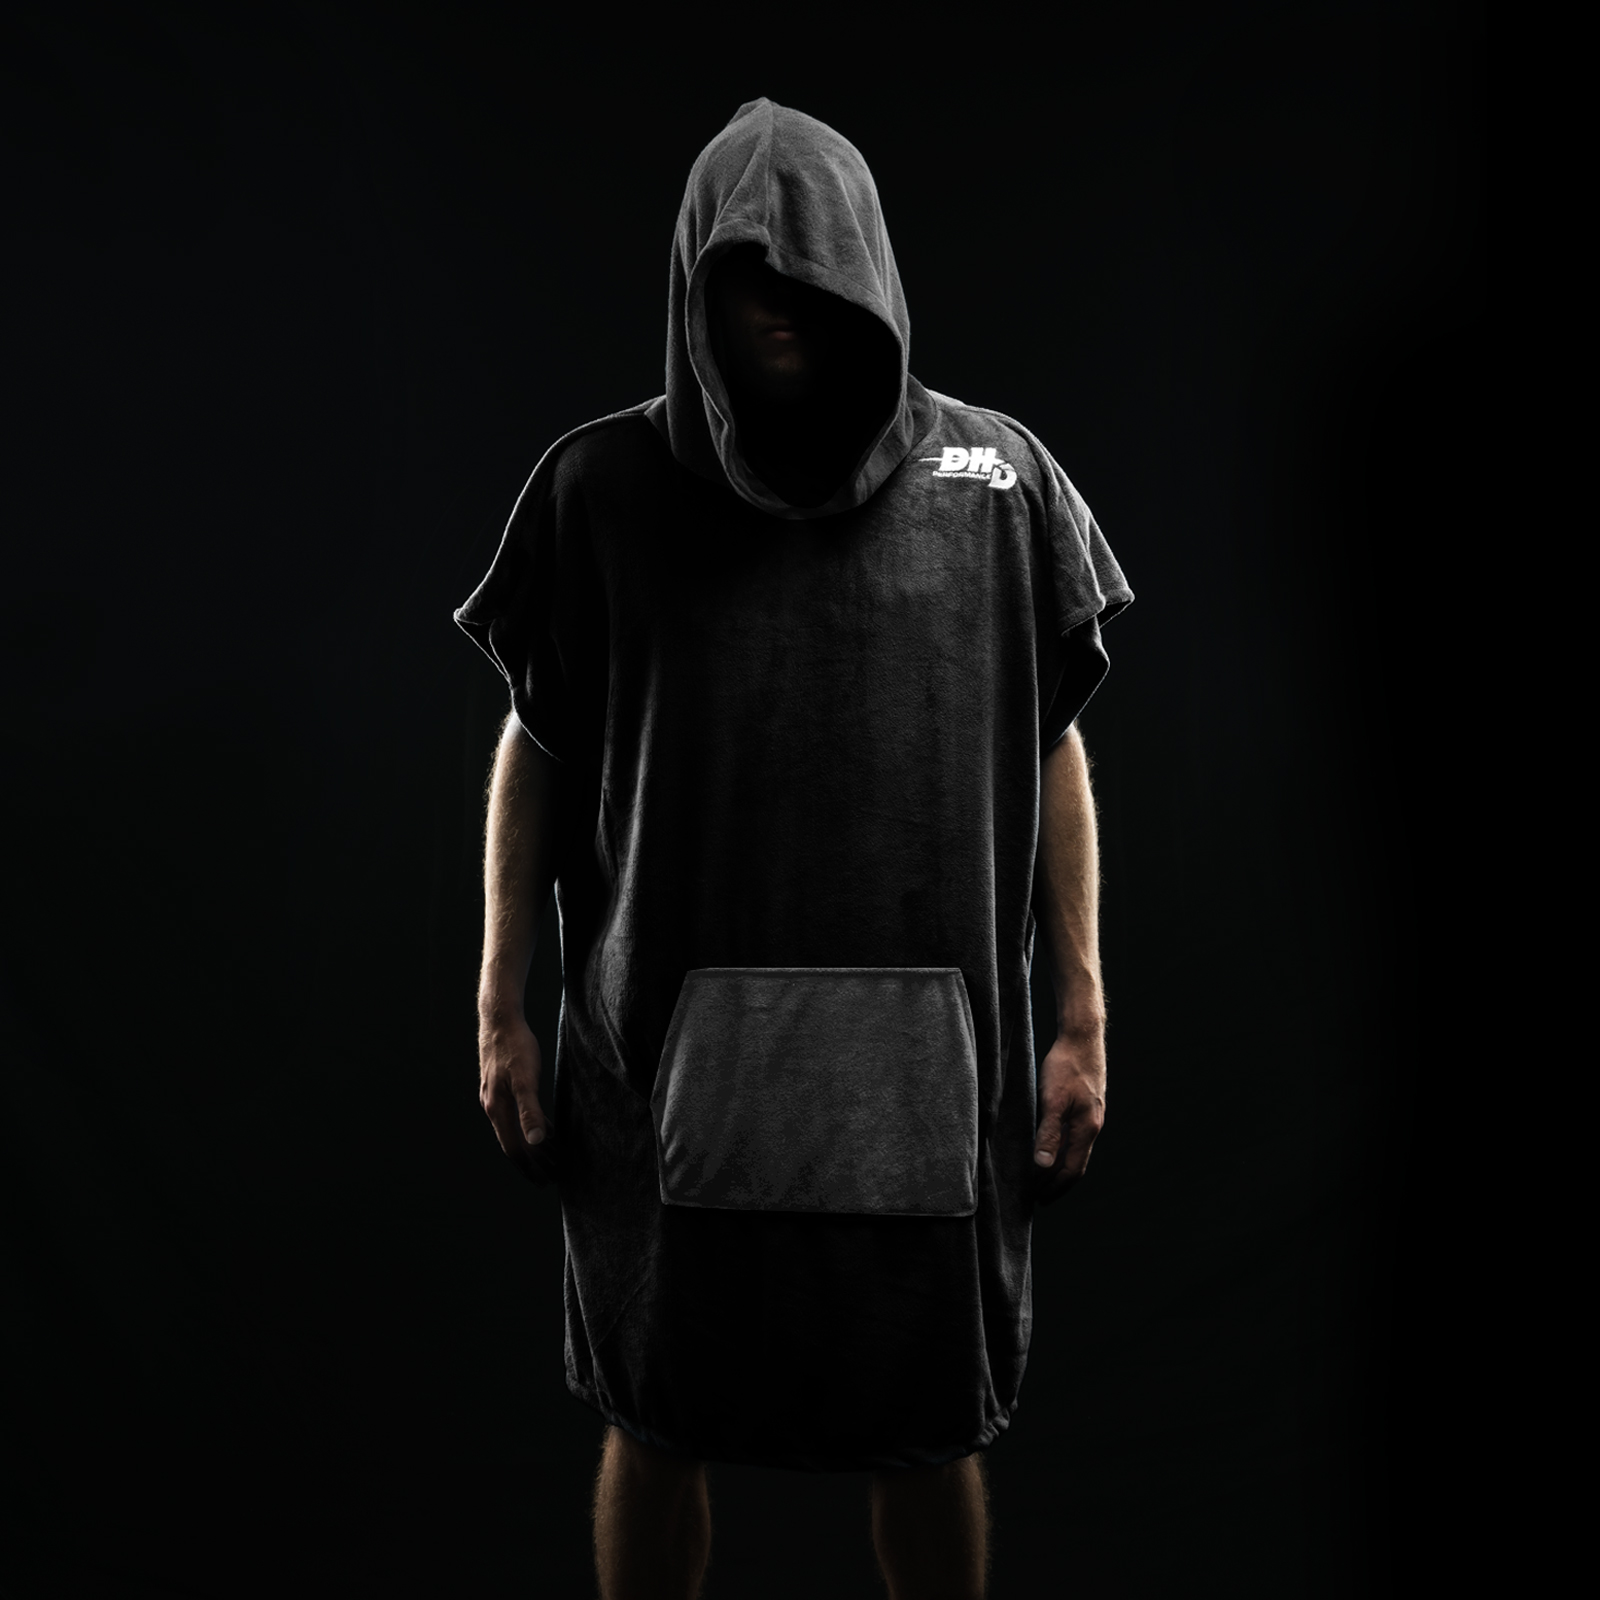 DHD Dry Towel - Black/Grey